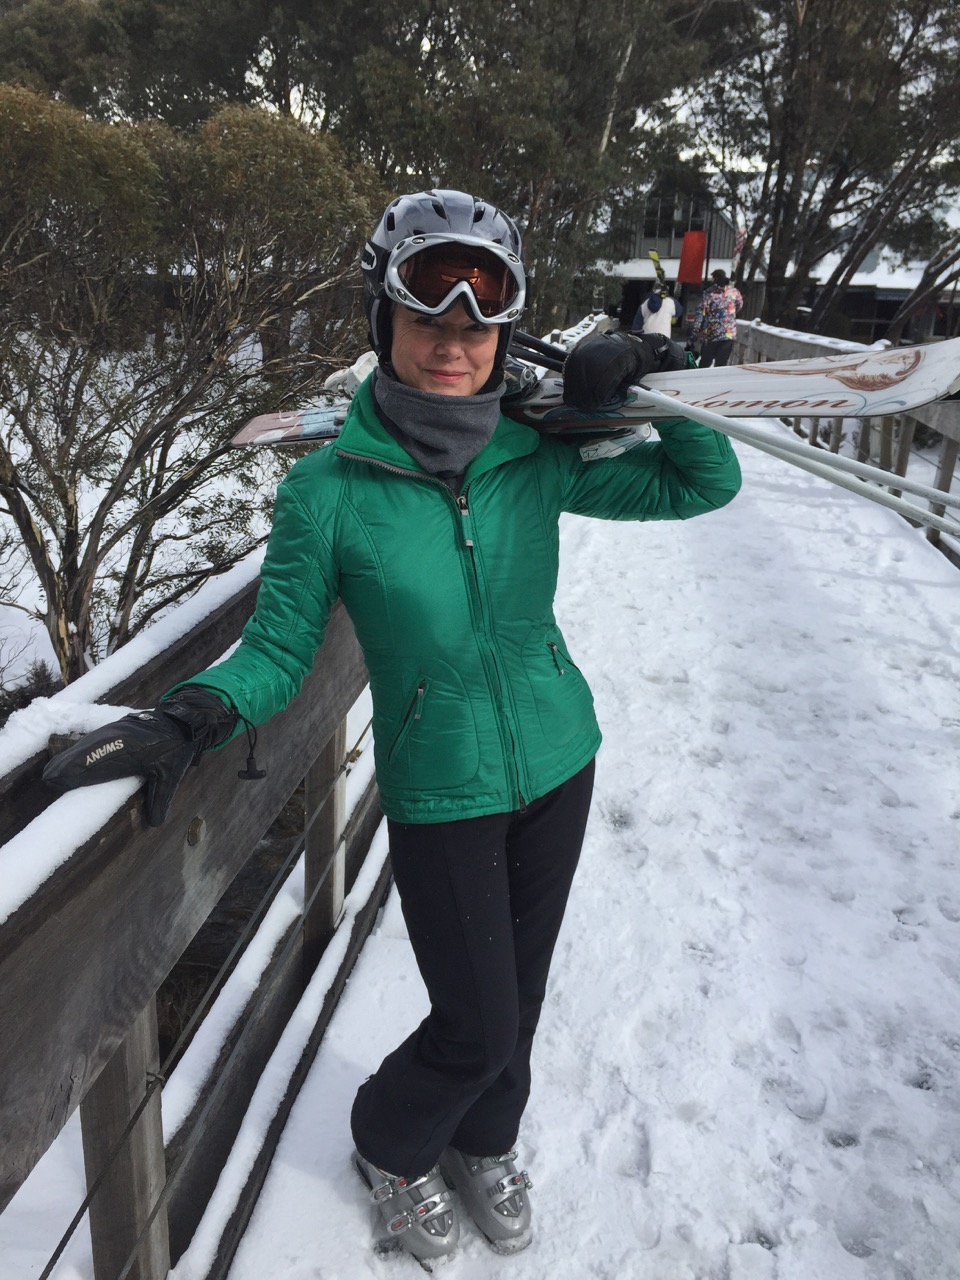 Susanne - packing right and light; rocking it on the ski slopes